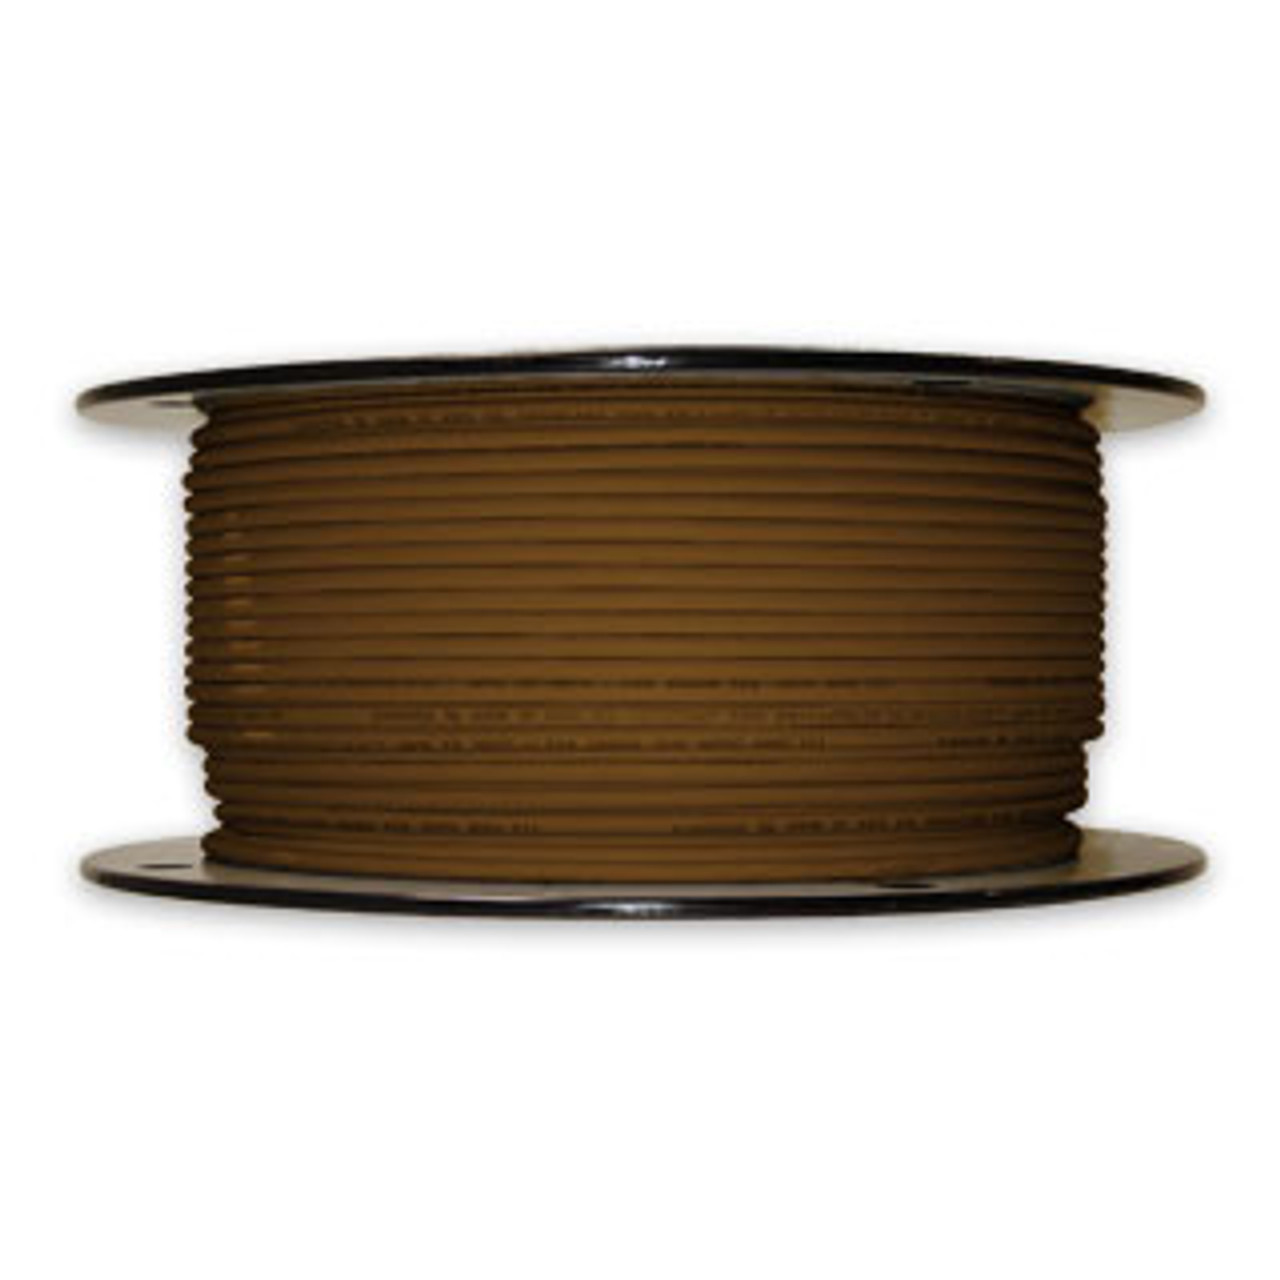 Arctic Ultraflex Cold Weather Flexible Wire 500 Foot Spool 12 AWG Brown Single Conductor Wire tinned fine strand 100% copper